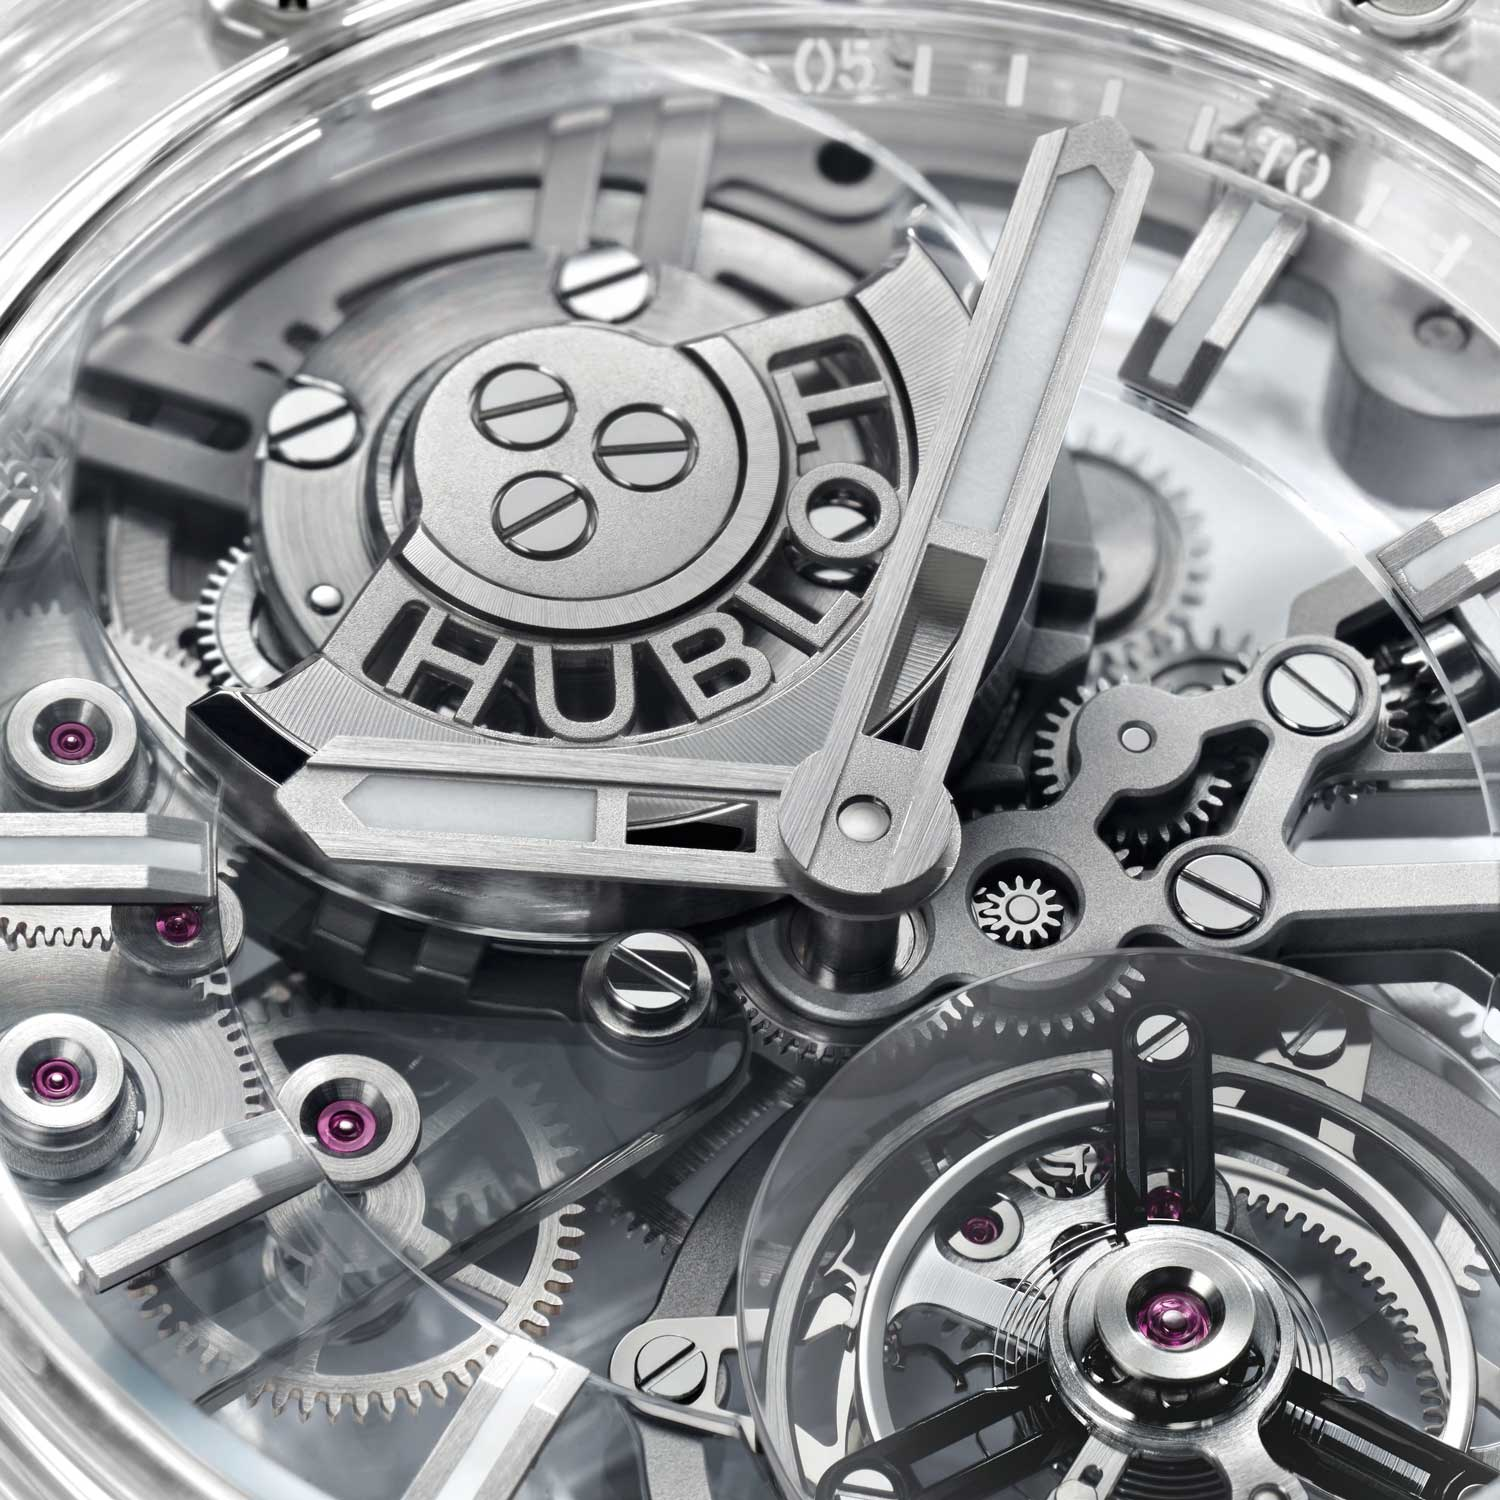 The watch is powered by Calibre HUB6035 that promises a power reserve of 72 hours